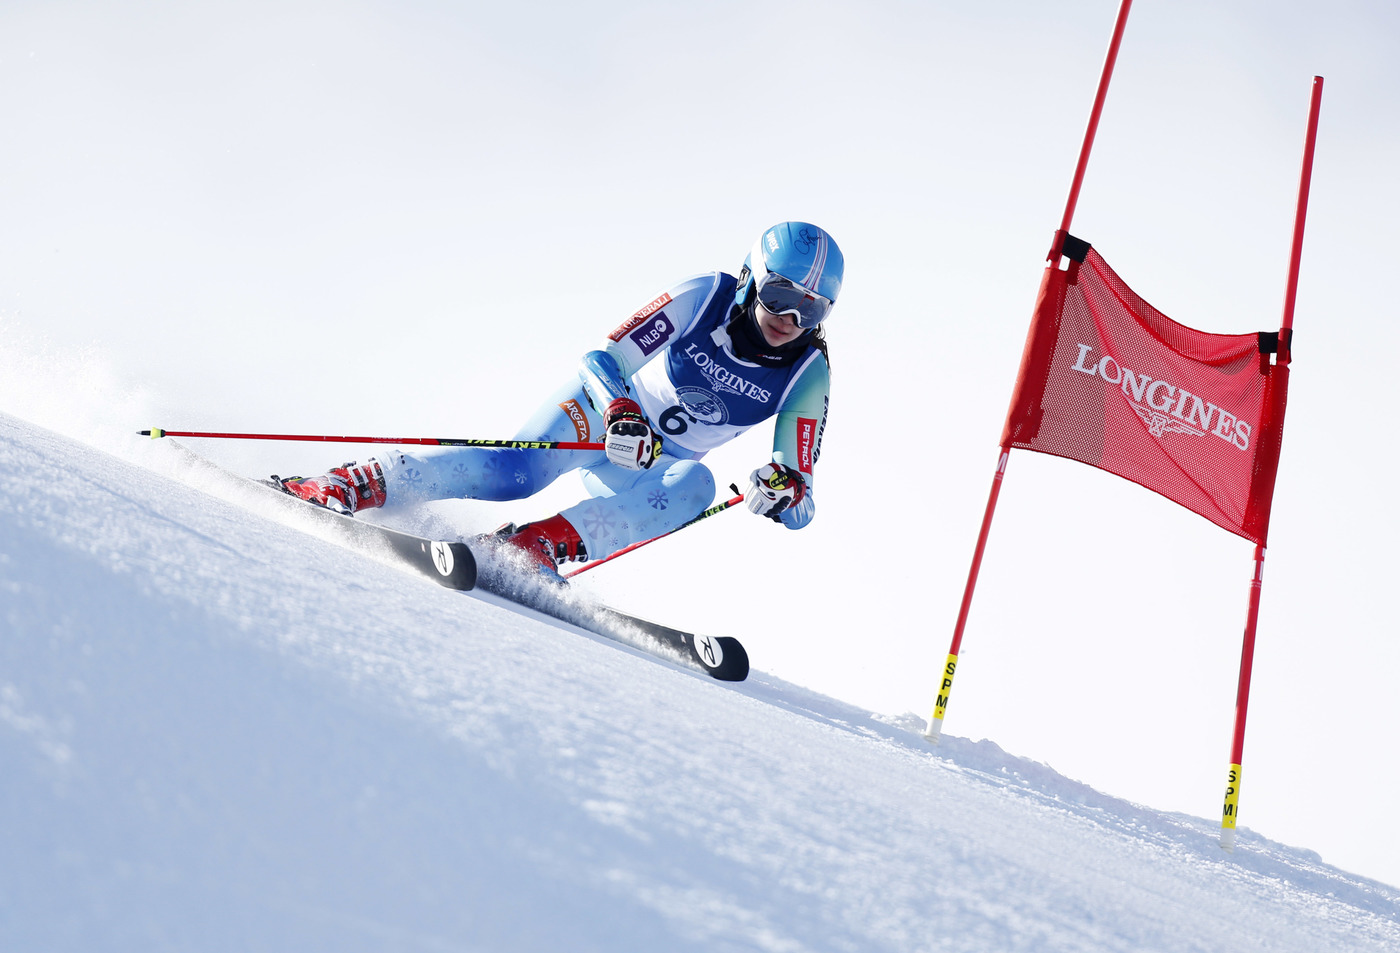 Longines Alpine Skiing Event: LONGINES FUTURE SKI CHAMPIONS - THE BEST YOUNG FEMALE SKIERS 8